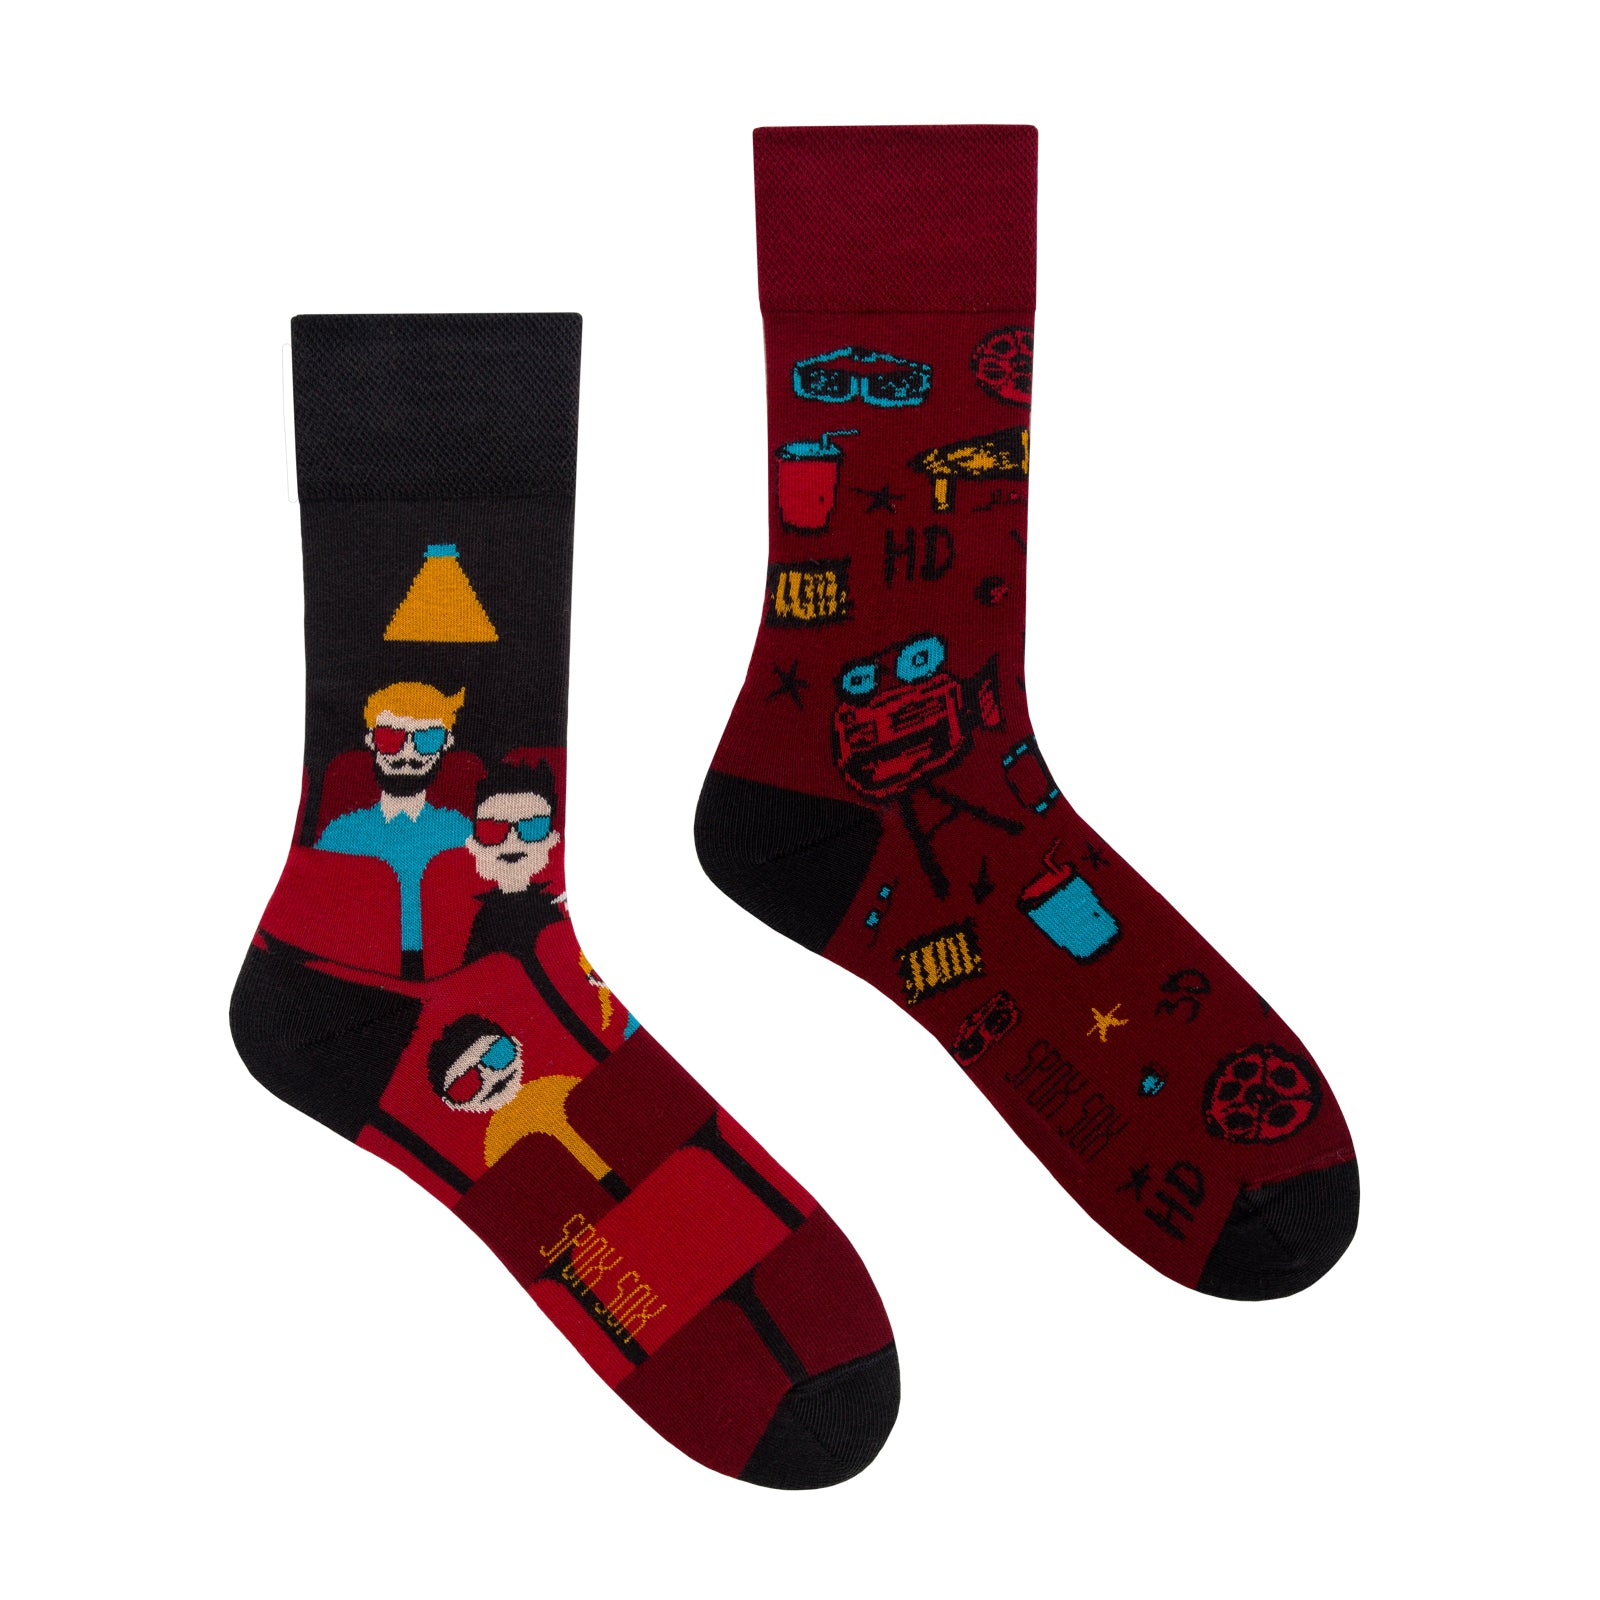 Cinema | Movie | Colourful Mismatched Funny Socks | King Stone | SpoxSox | Spox Sox